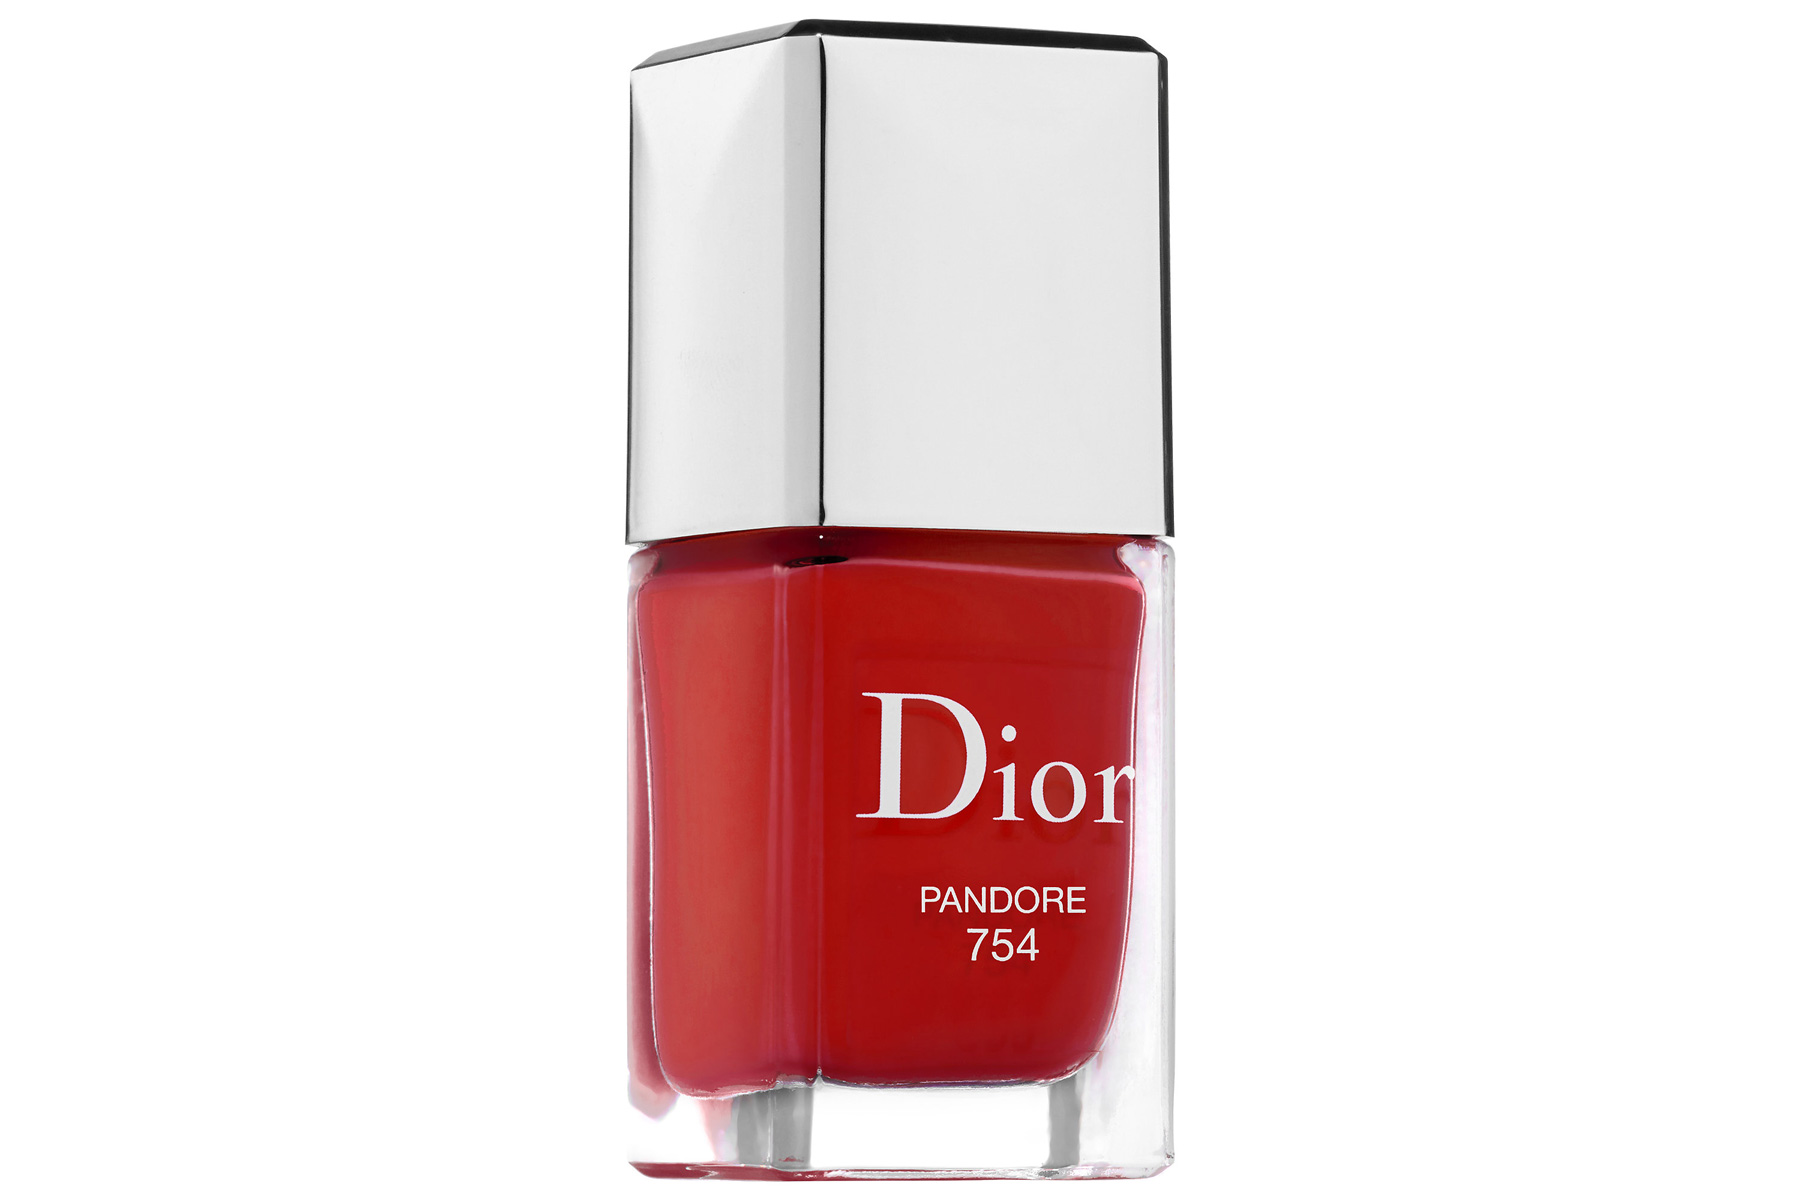 Dior Nail Lacquer in Pandore